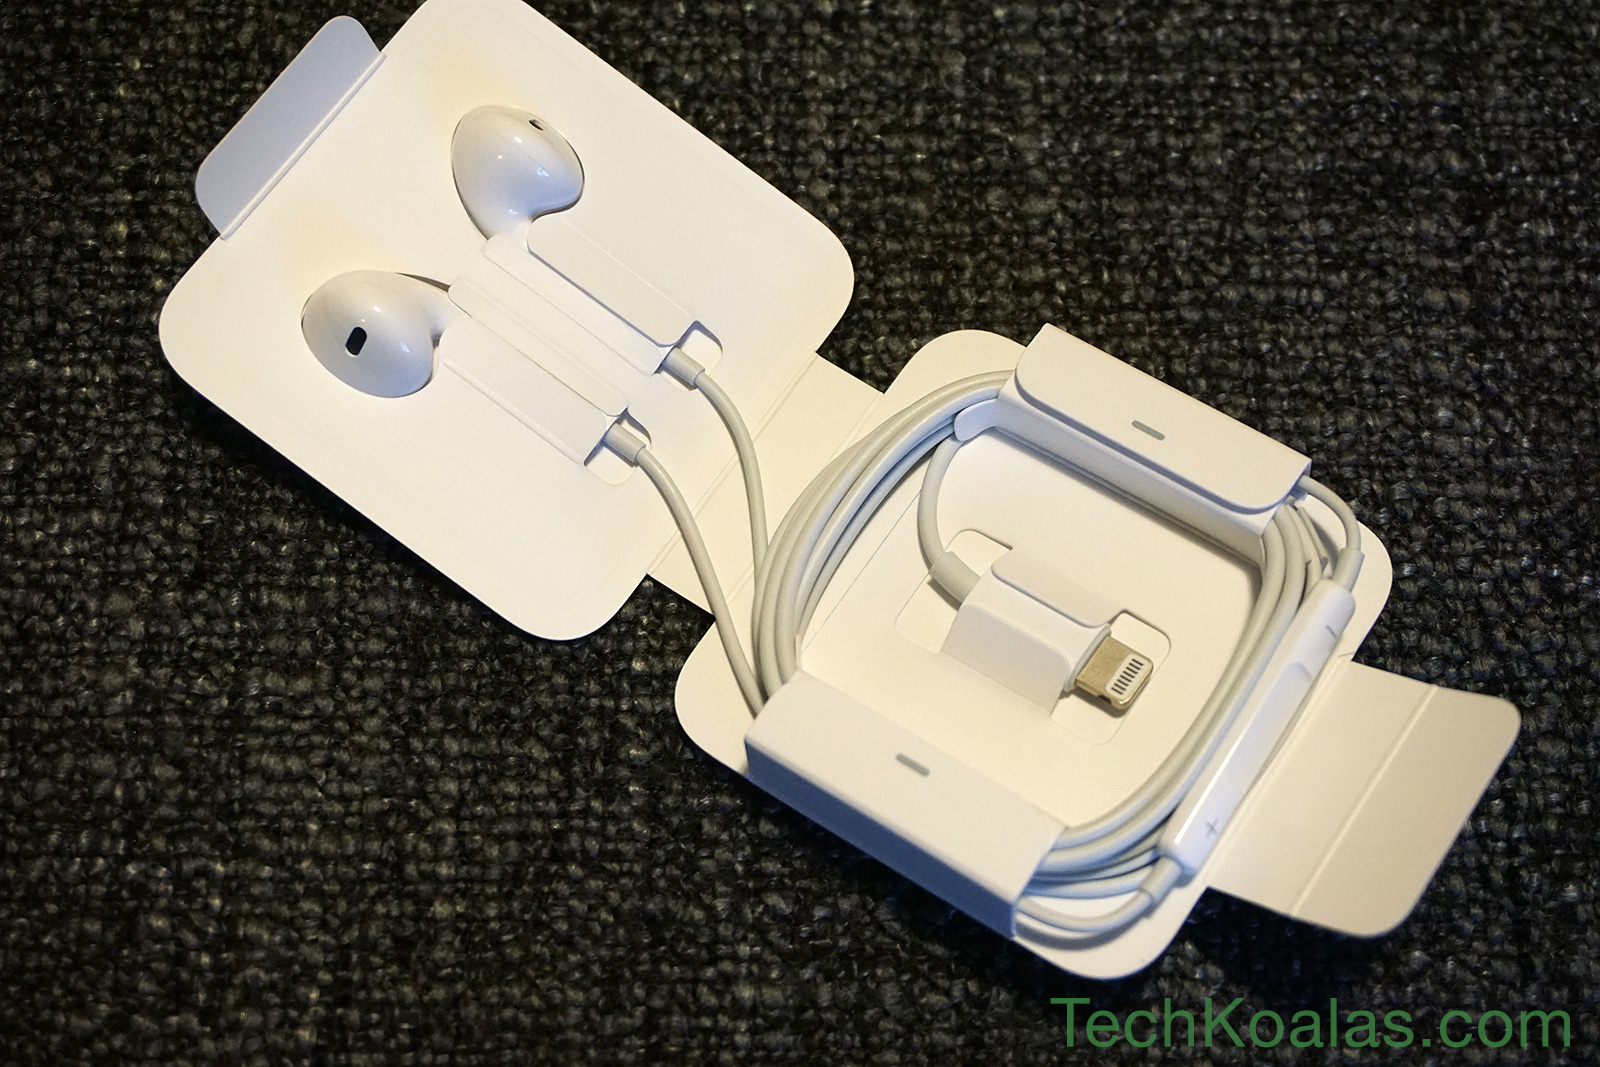 Iphone 8 earphones adapter - headphones jack adapter iphone 8